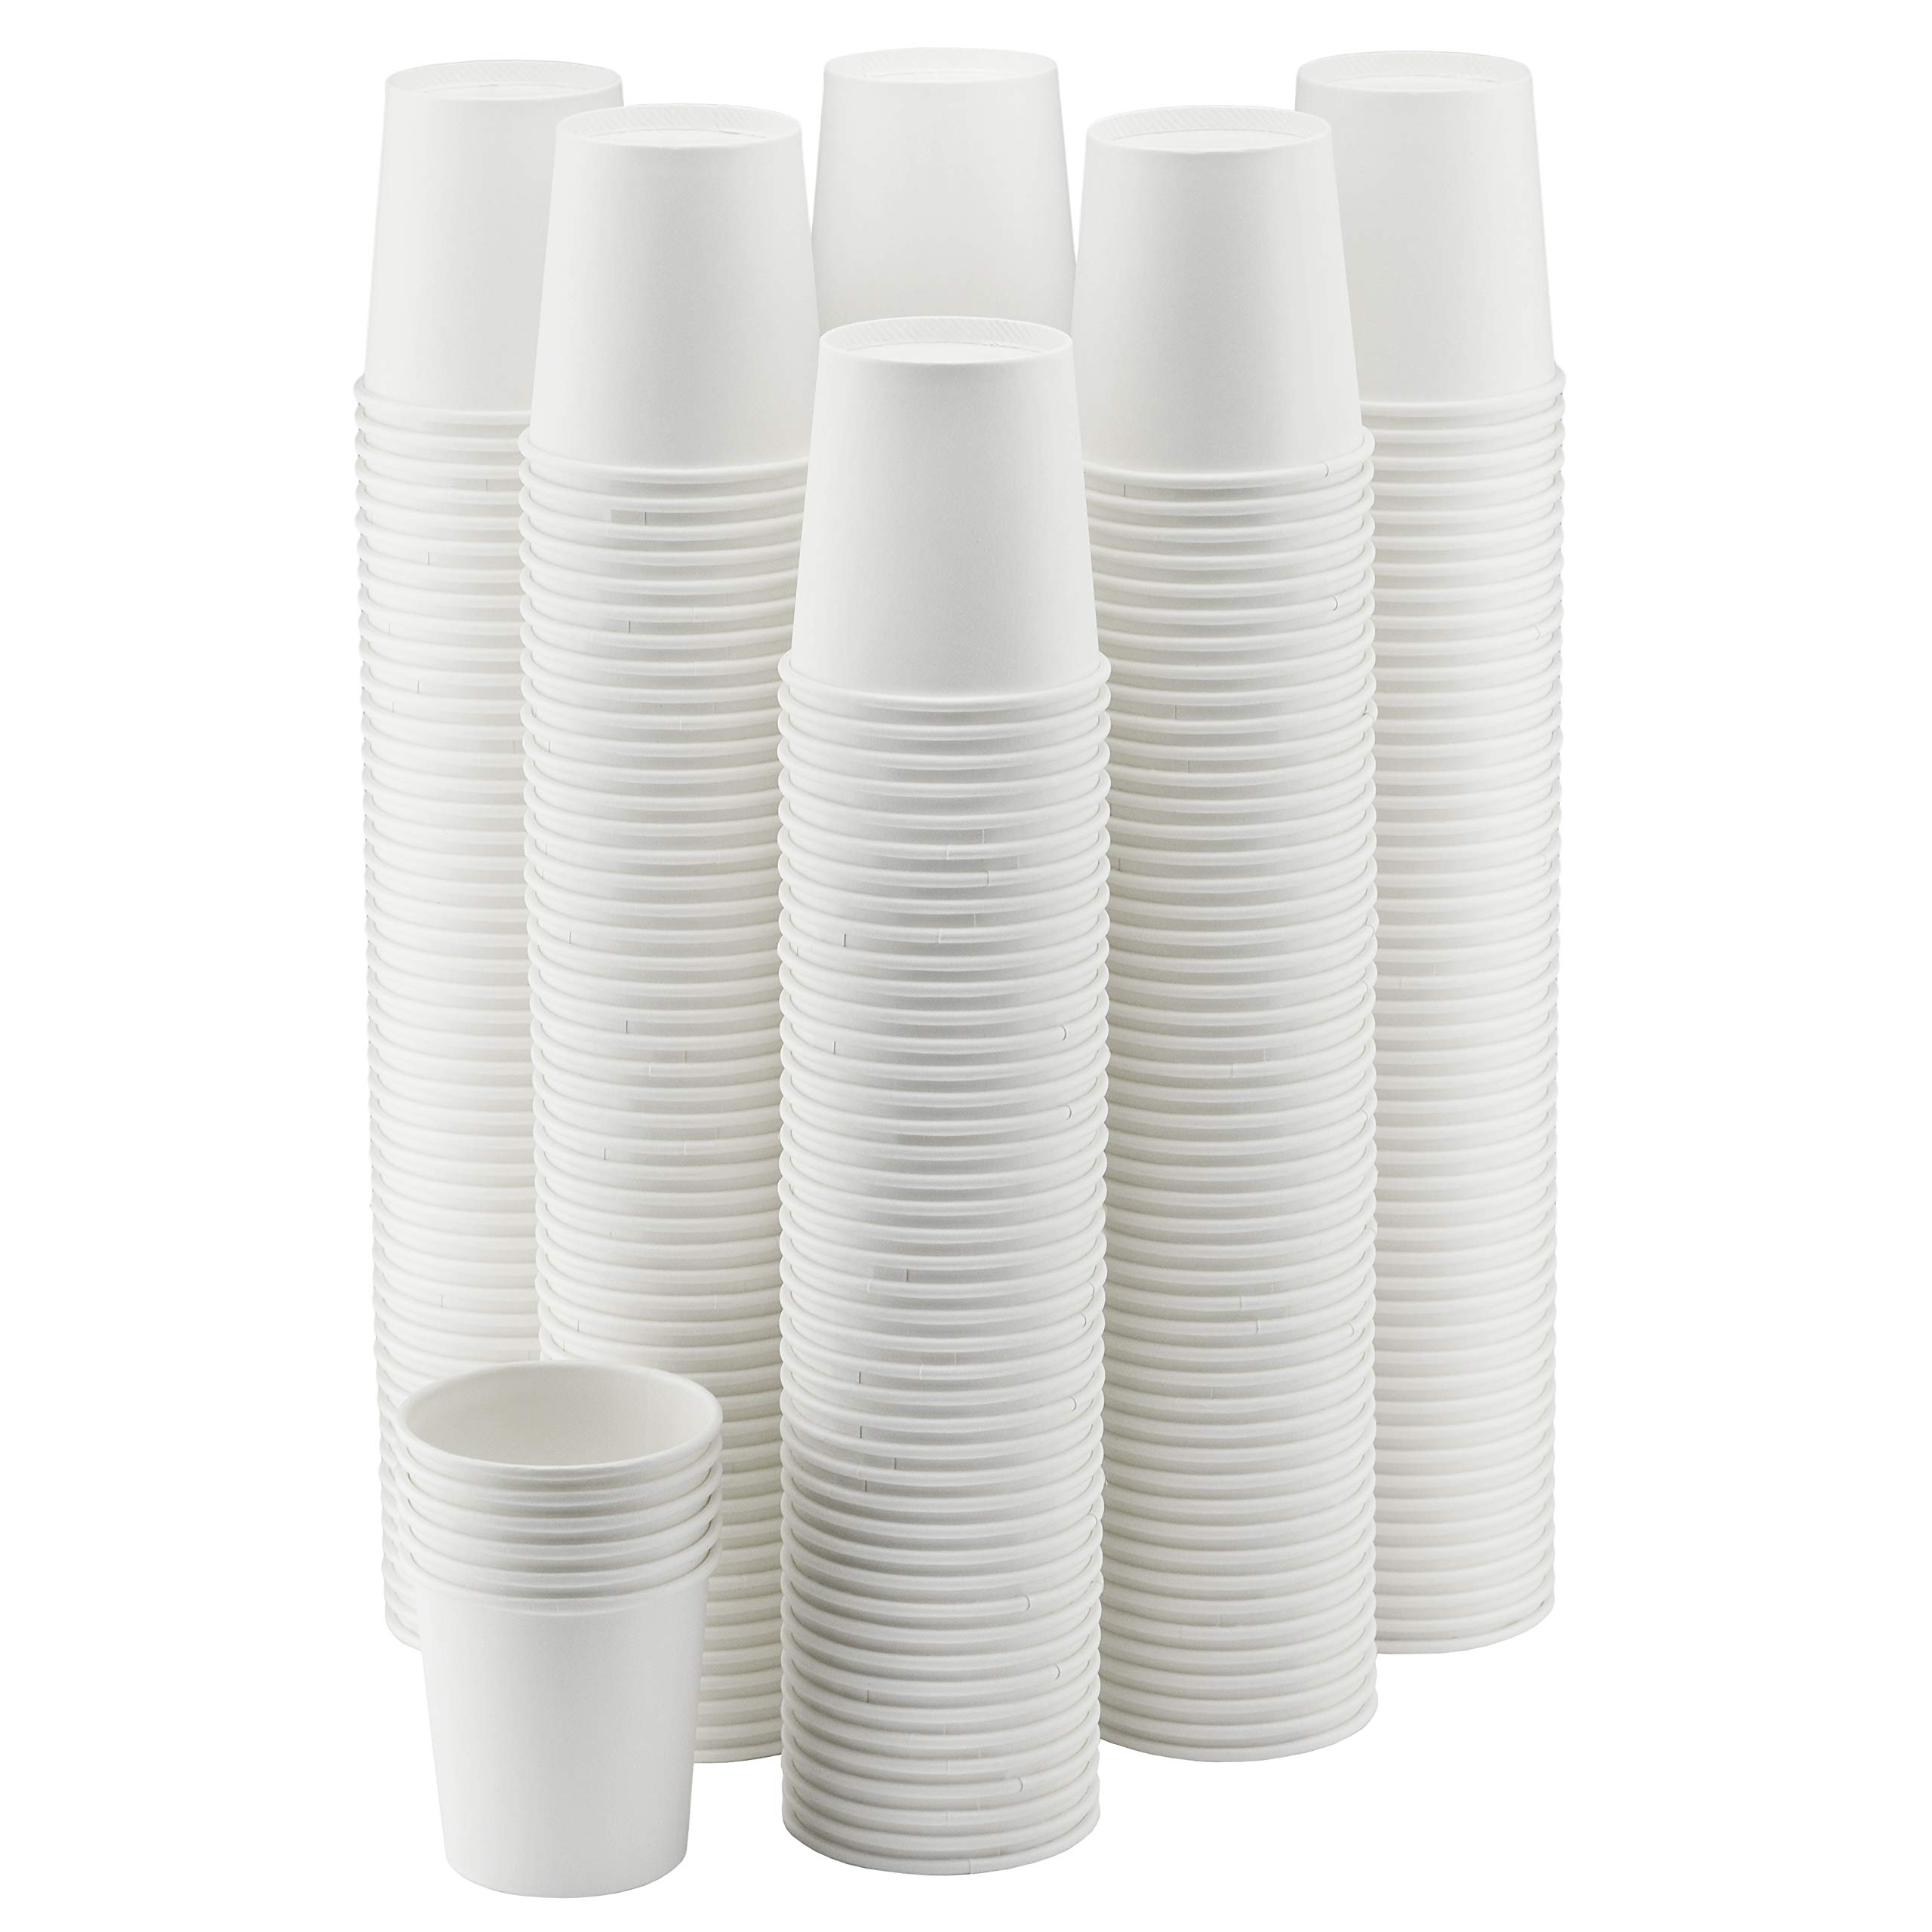 NYHI 300-Pack 6 oz. White Paper Disposable Cups - Hot/Cold Beverage Drinking Cup for Water, Juice, Coffee or Tea - Ideal for Water Coolers, Party, or Coffee On the Go'